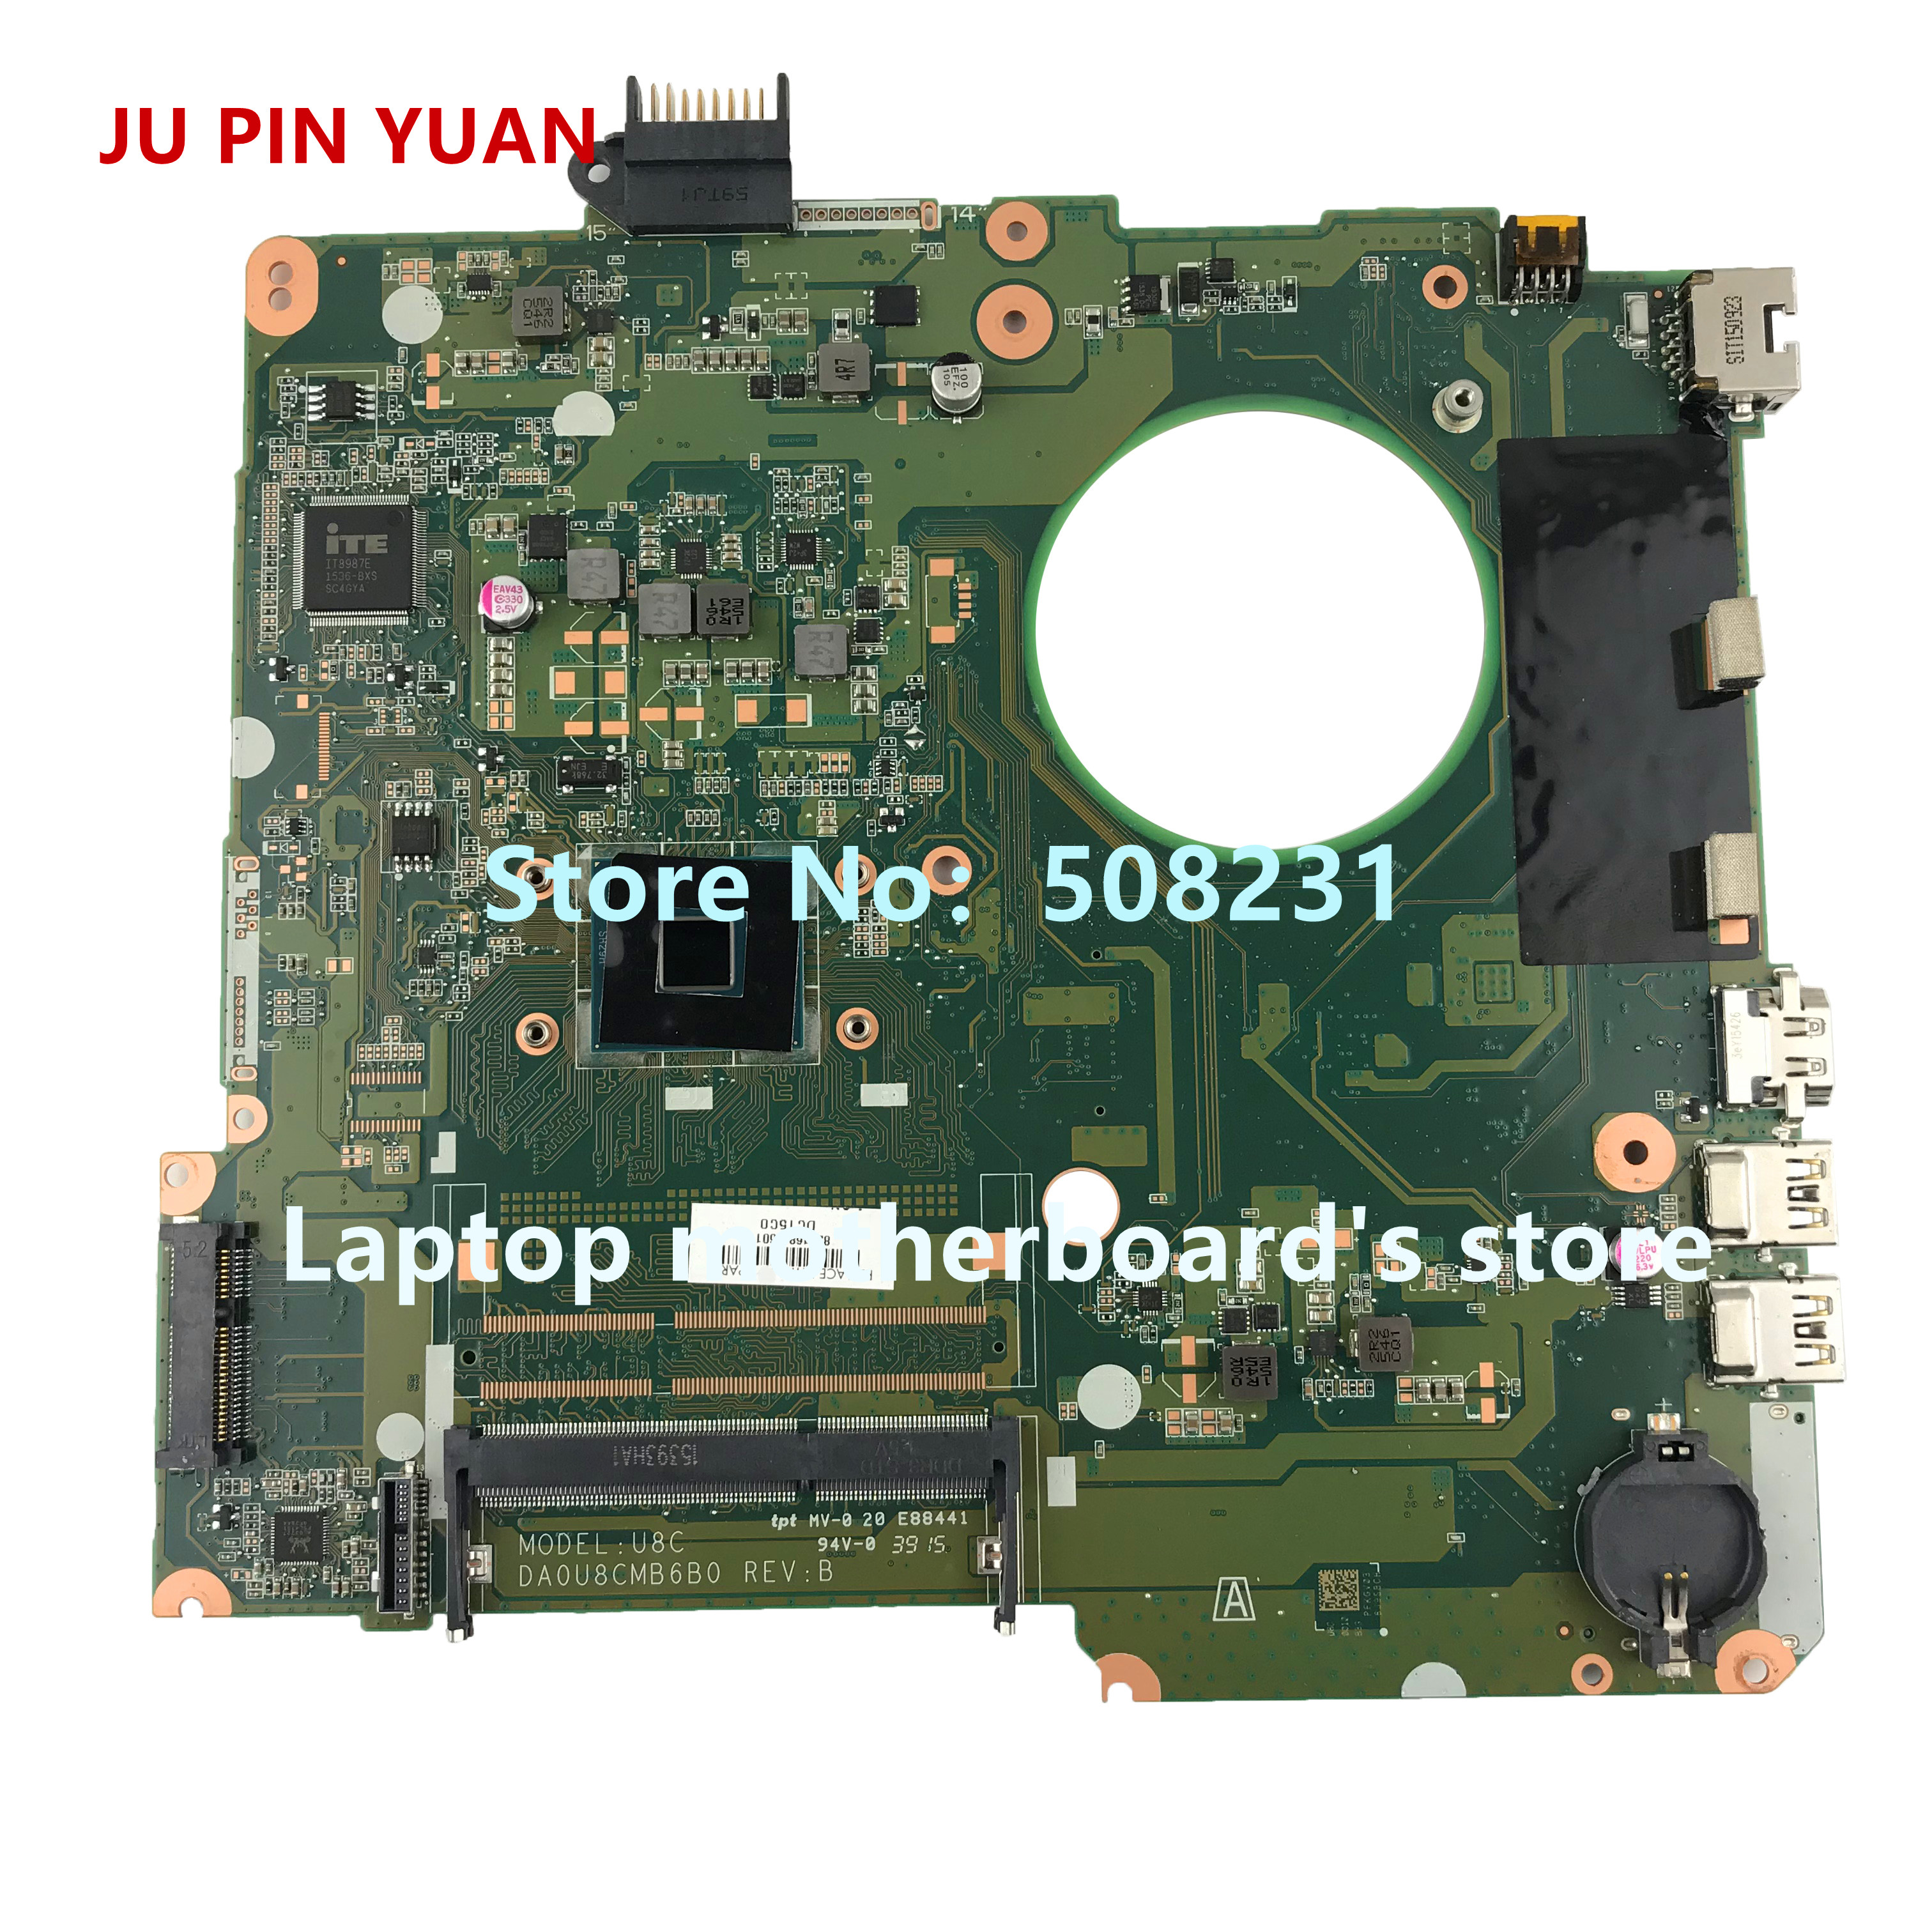 JU PIN YUAN 828168-601 828168-501 DA0U8CMB6B0 U8C for HP Pavilion 15-F 15-F223NR  Laptop motherboard with CelN3050 fully TestedJU PIN YUAN 828168-601 828168-501 DA0U8CMB6B0 U8C for HP Pavilion 15-F 15-F223NR  Laptop motherboard with CelN3050 fully Tested